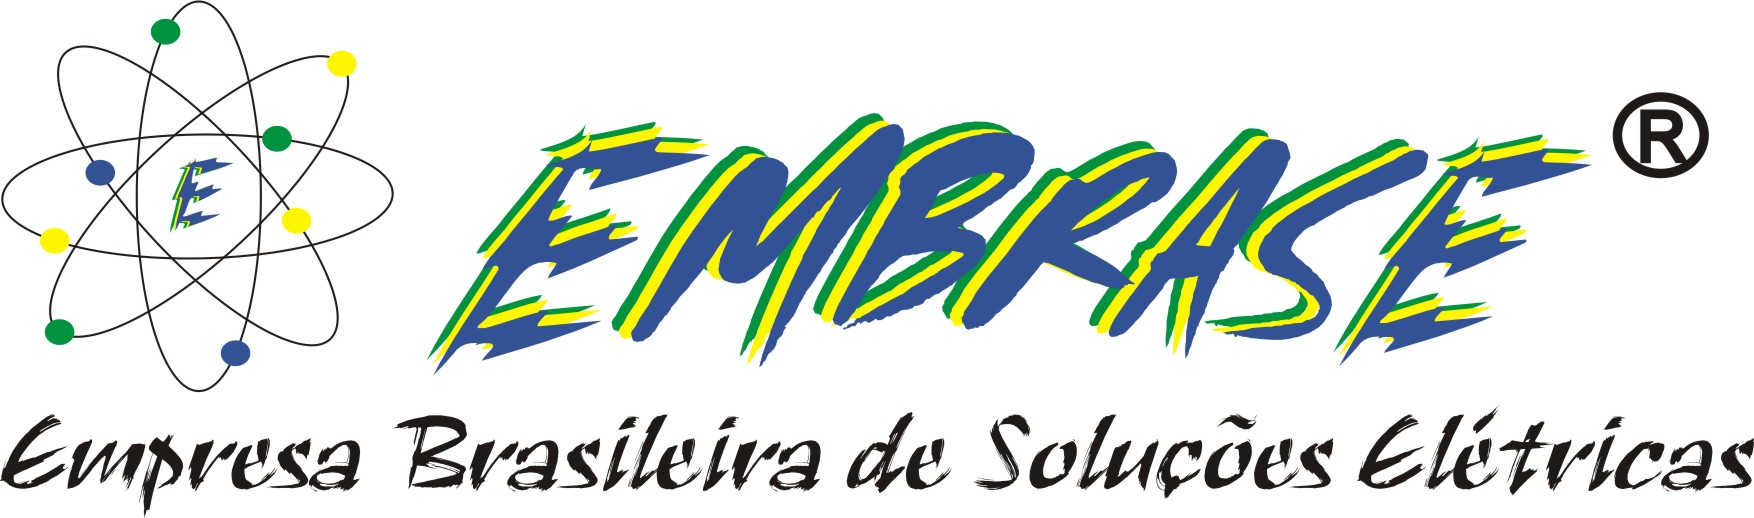 logo-embrase-ii-abesco